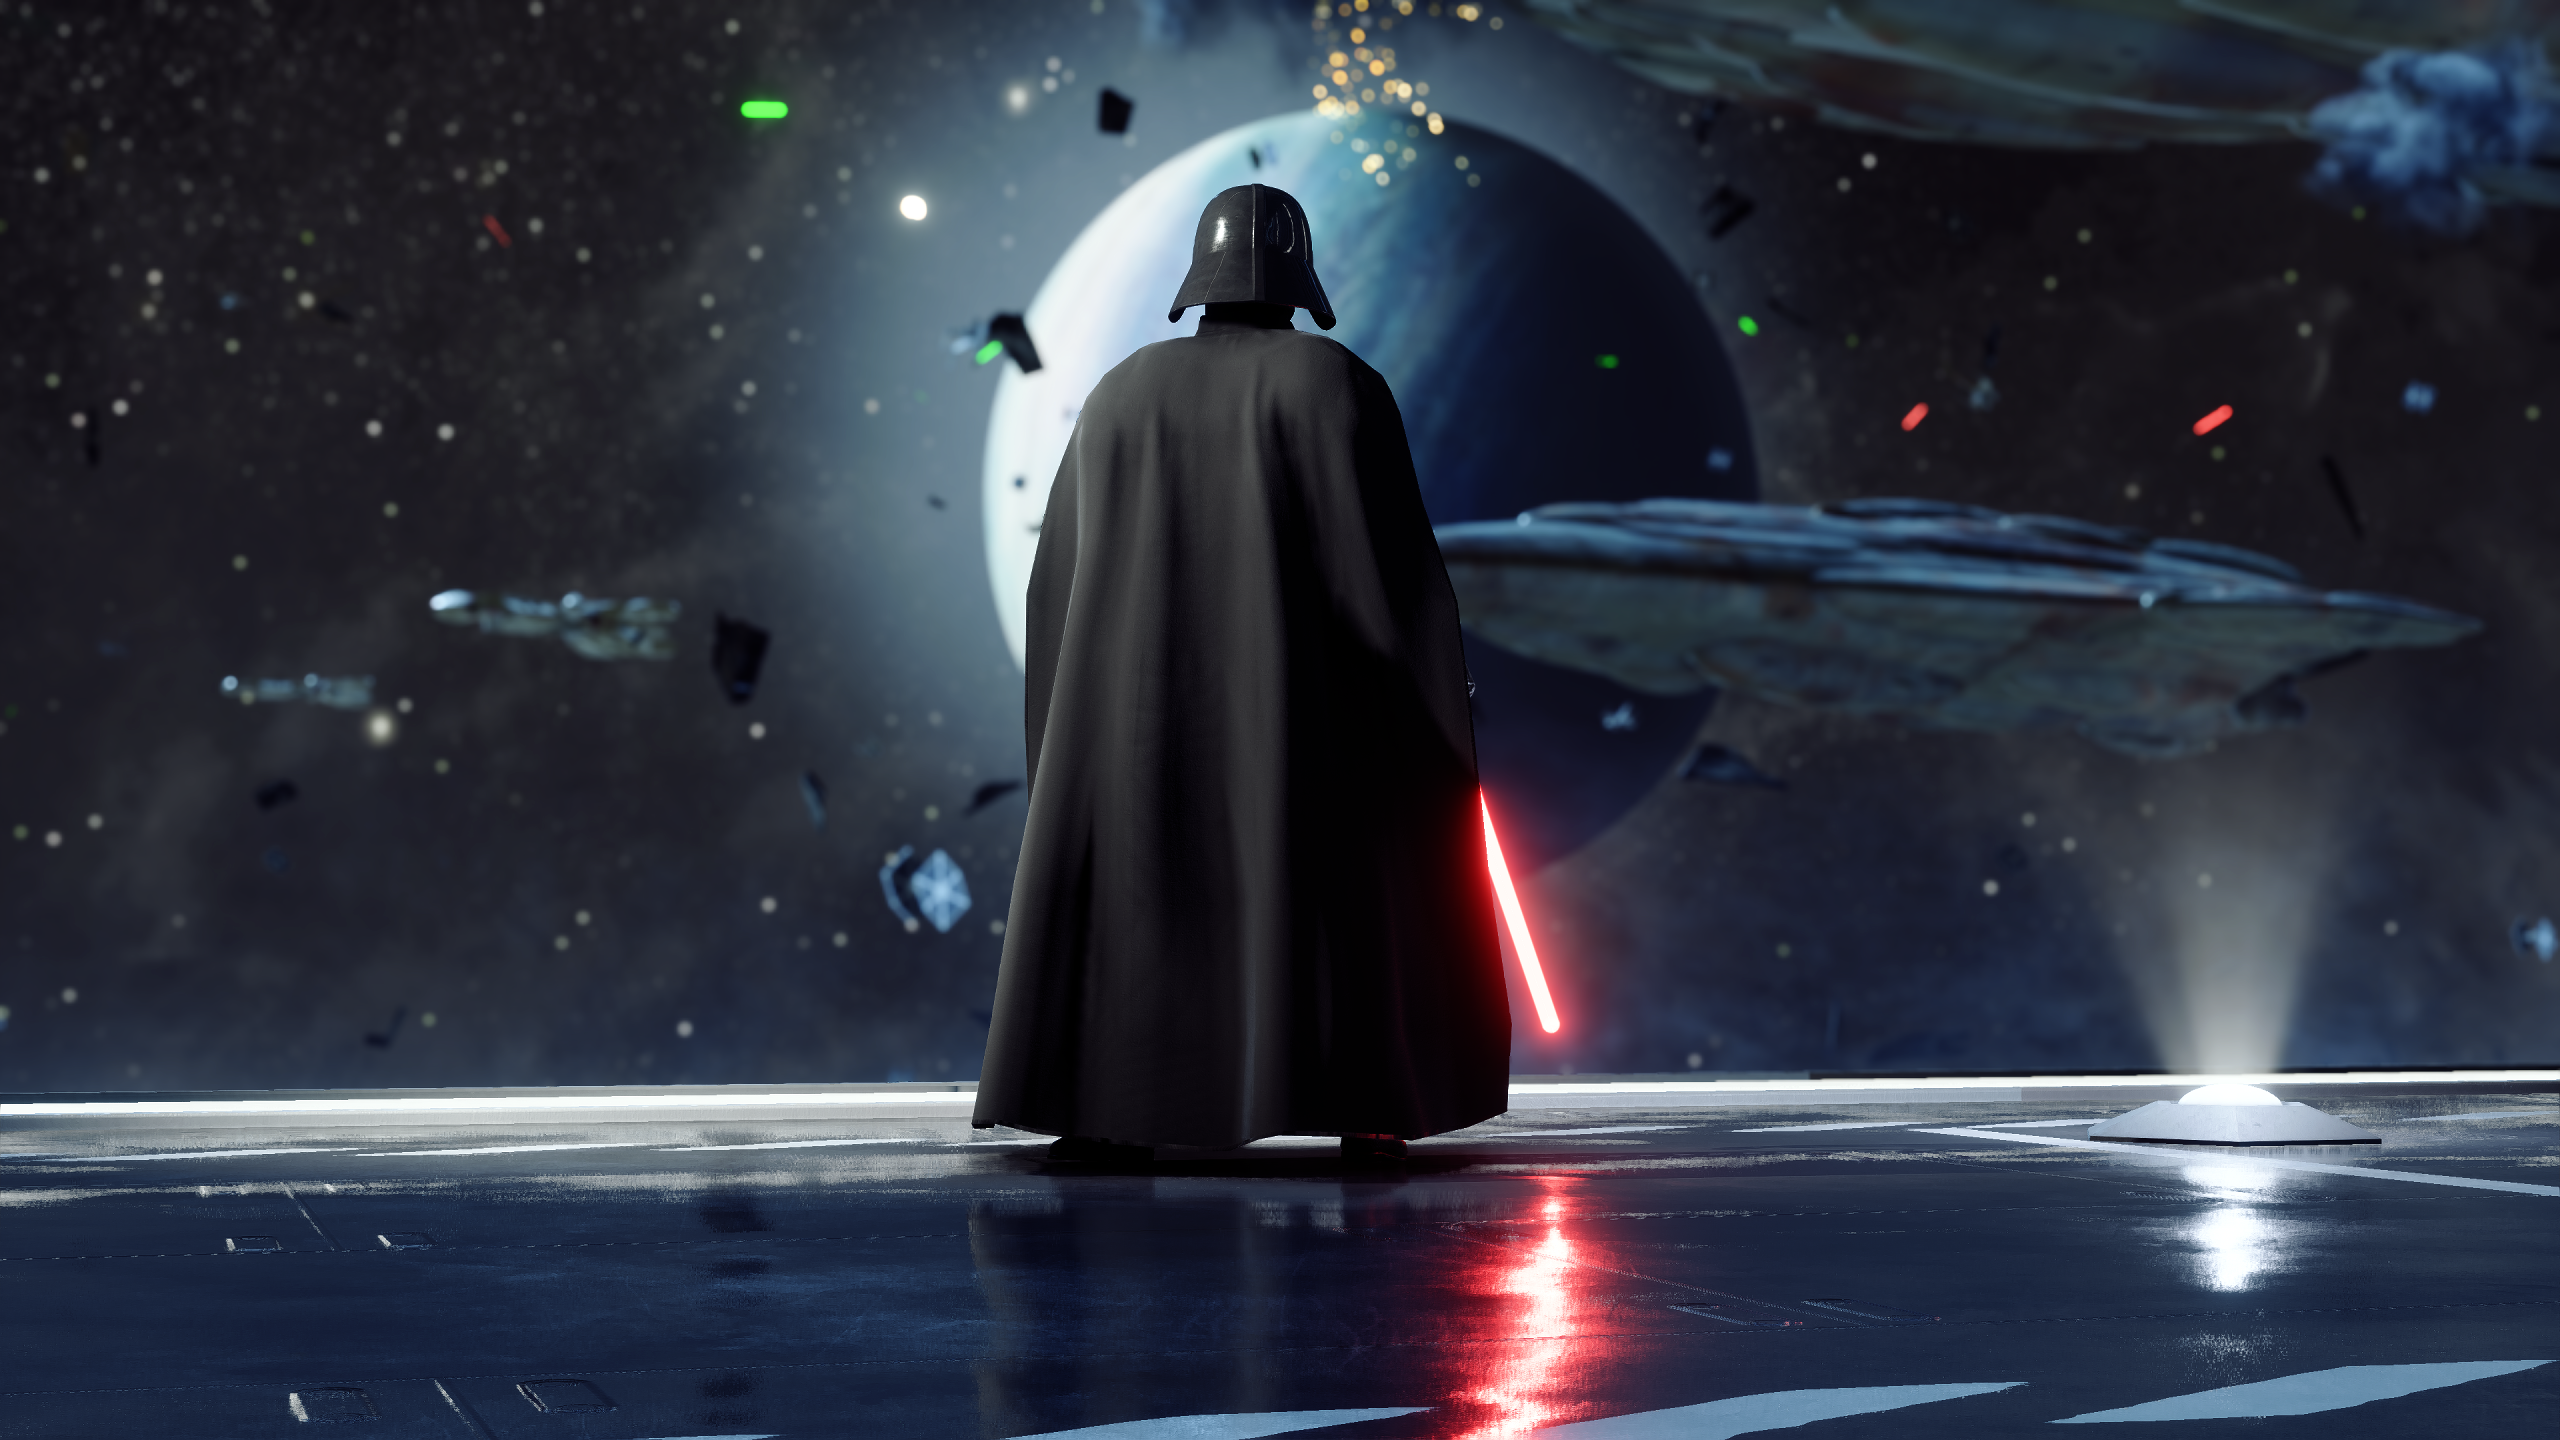 Darth Vader Wallpaper That I Made Darth Vader Wallpaper 4k